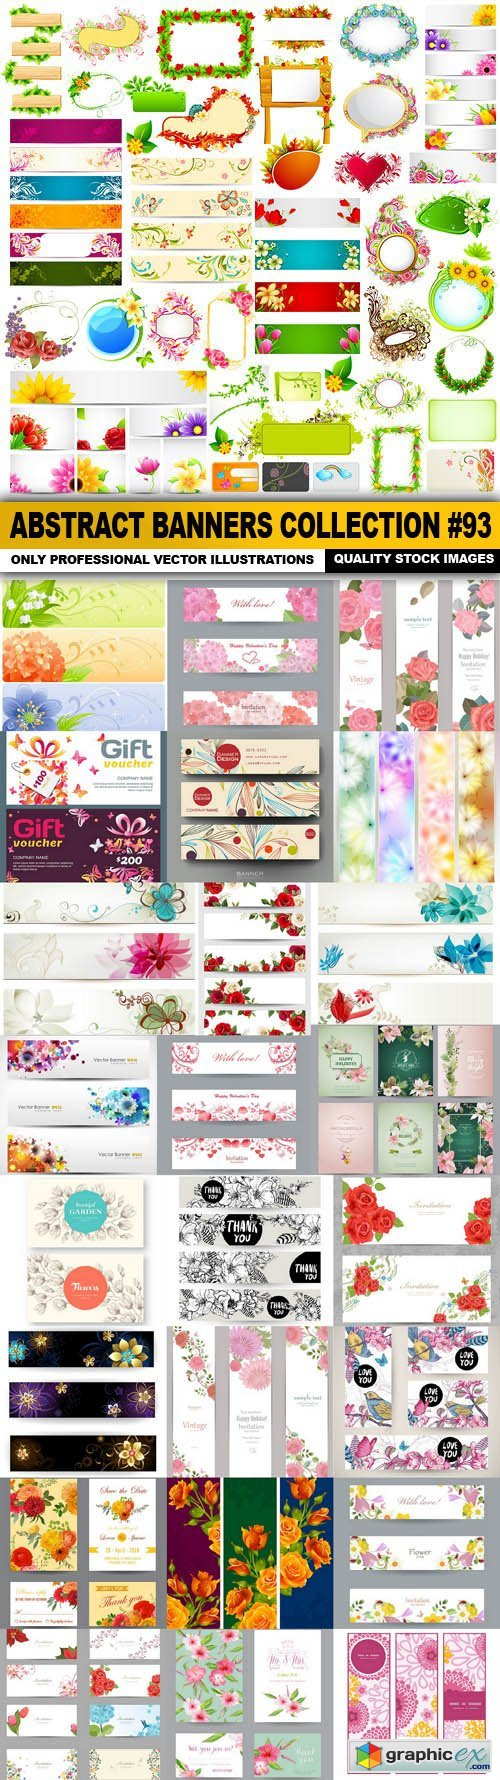 Abstract Banners Collection #93 - 25 Vectors